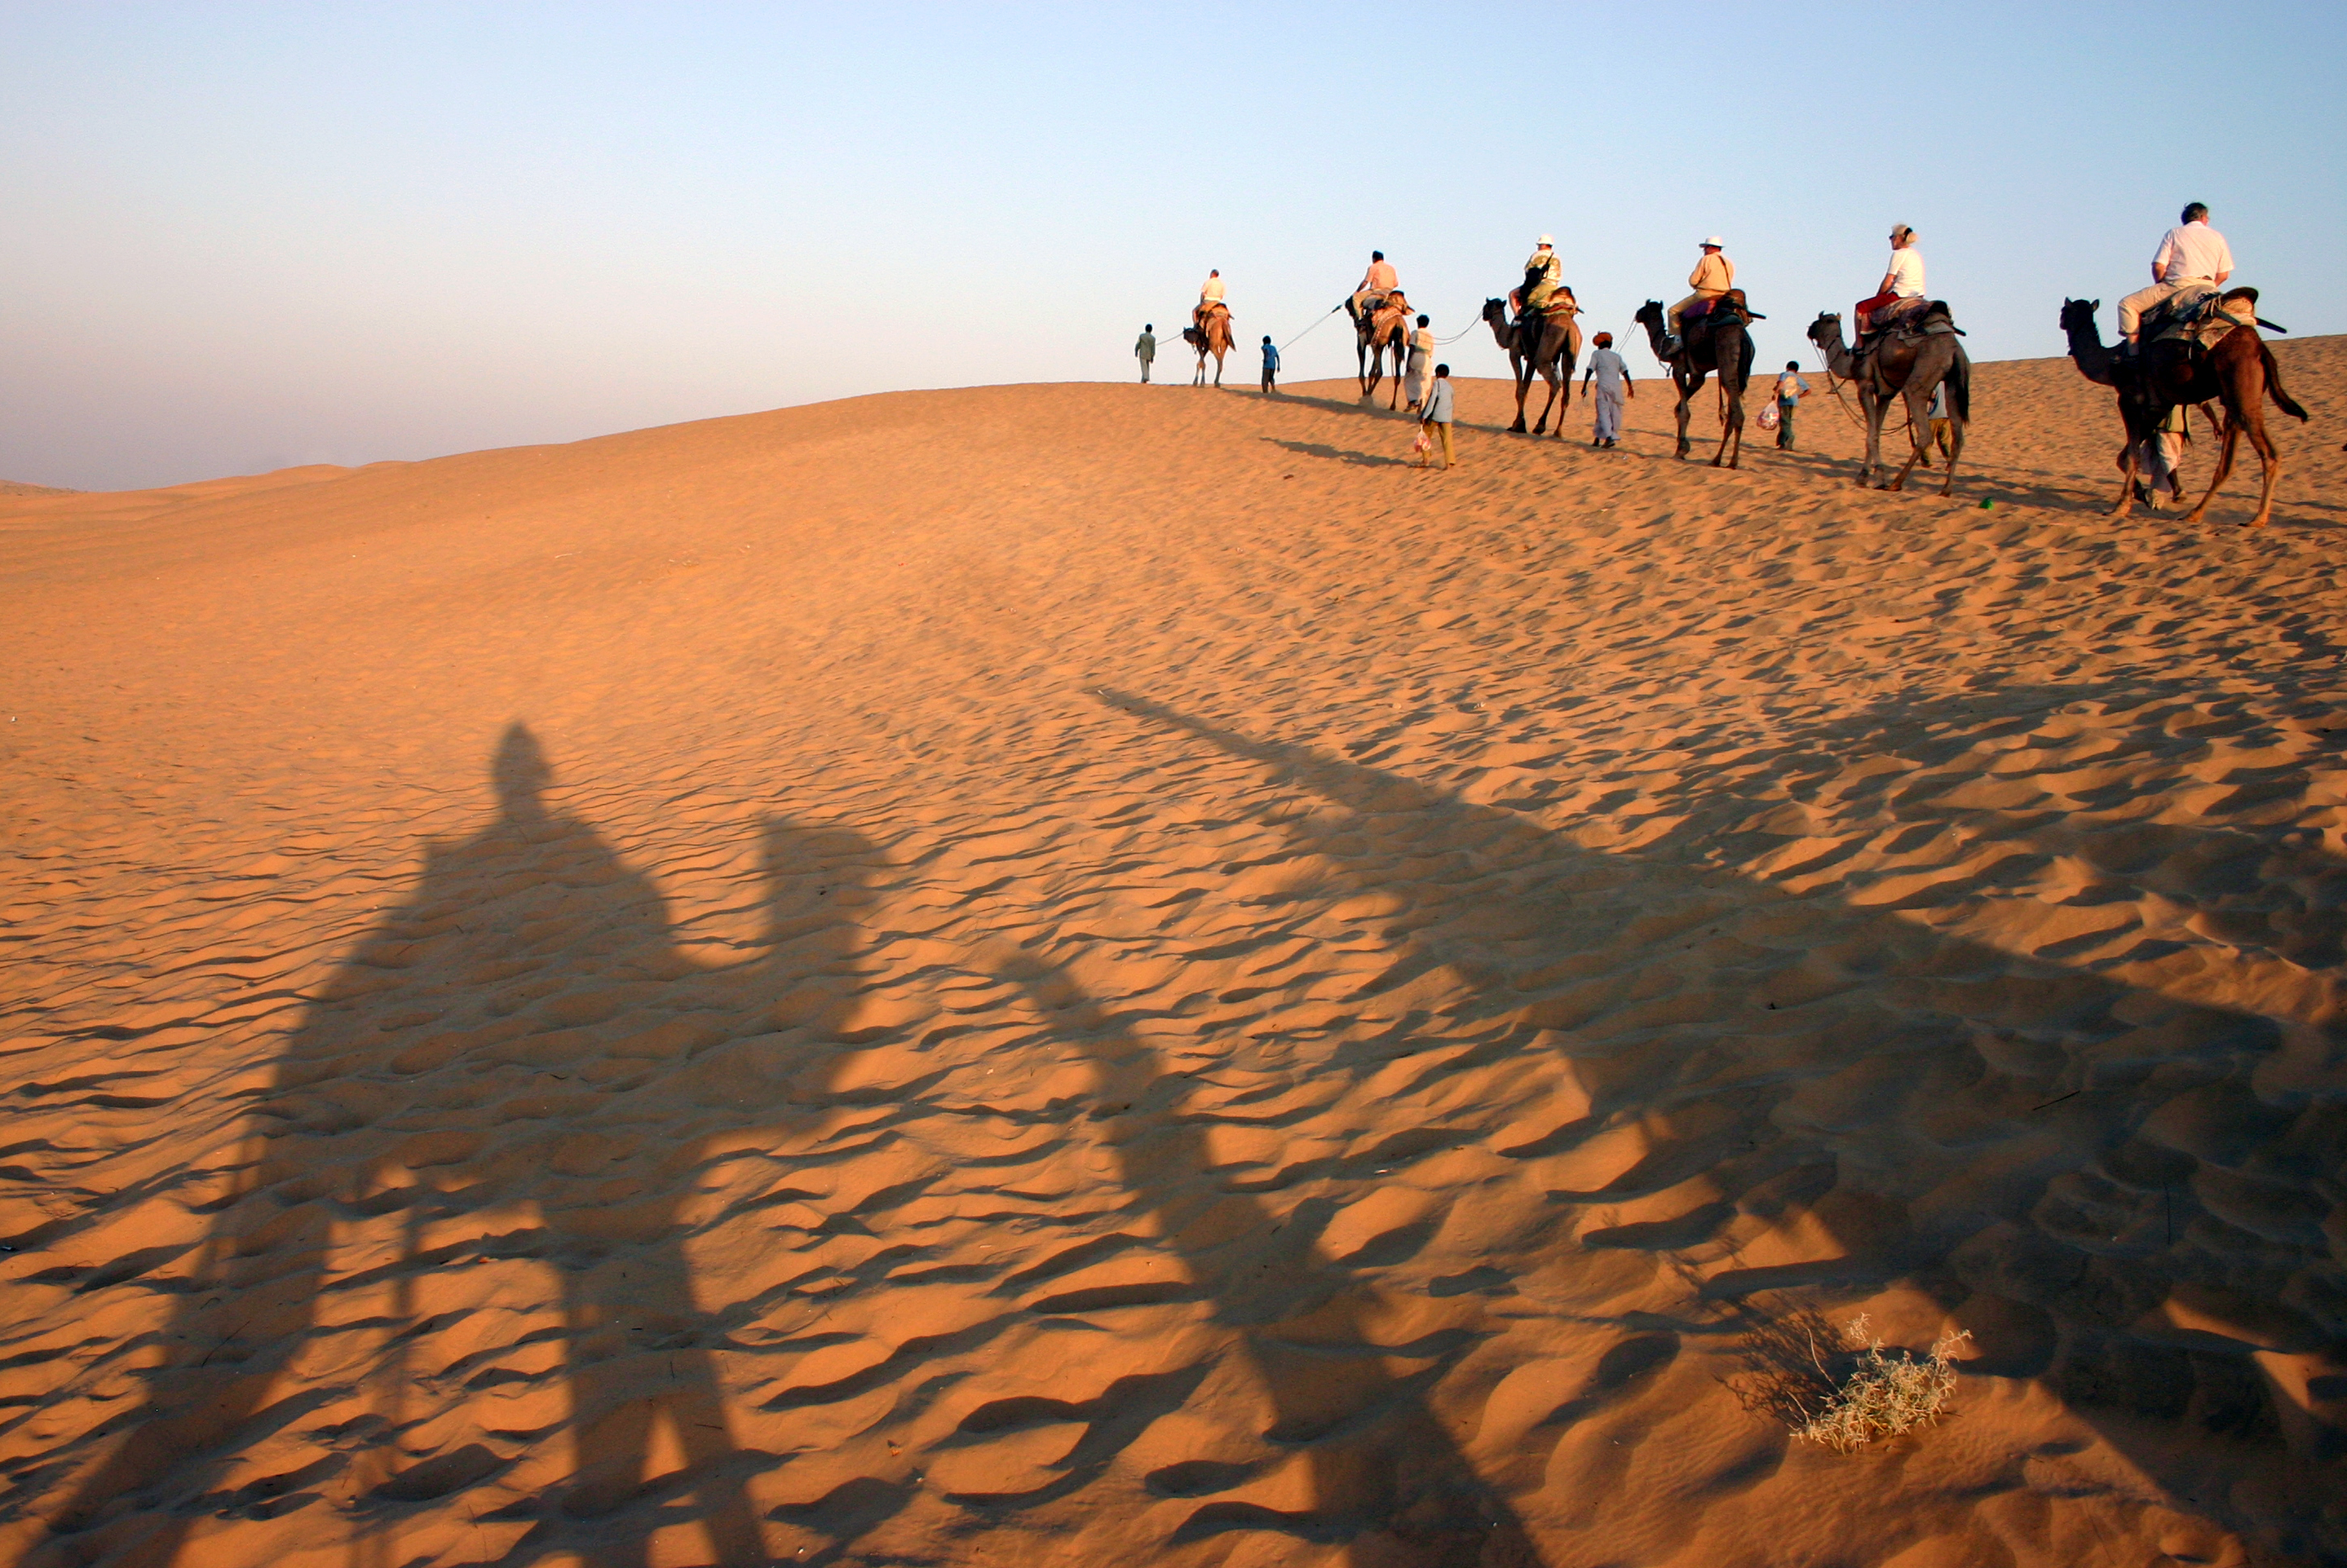 Desert of Rajastan | North India tour packages from Bangalore, Karnataka, India